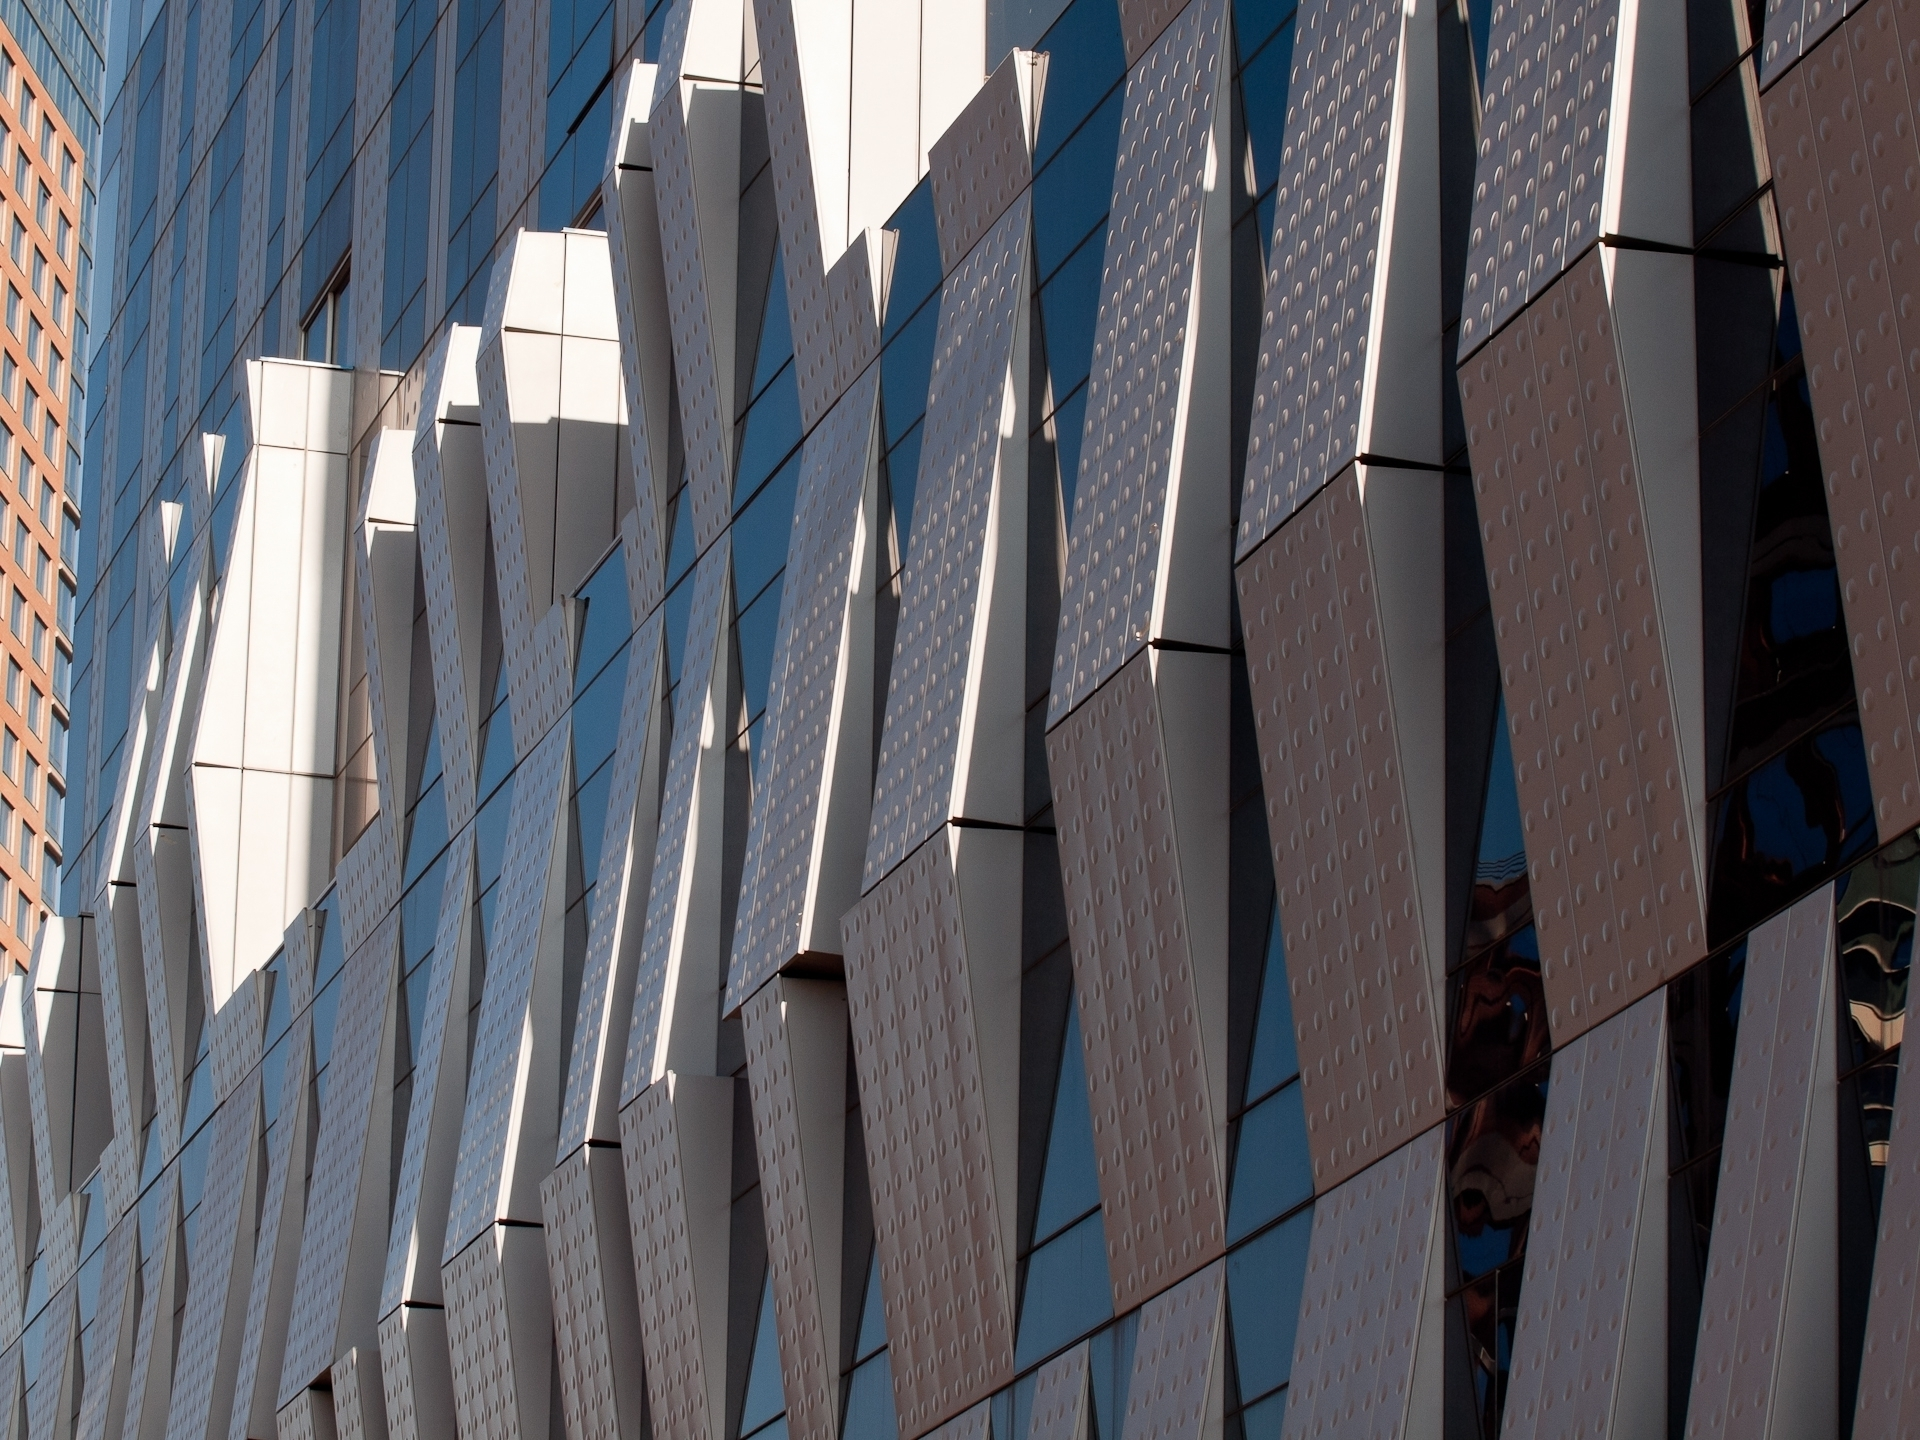 Curtain wall architecture 2